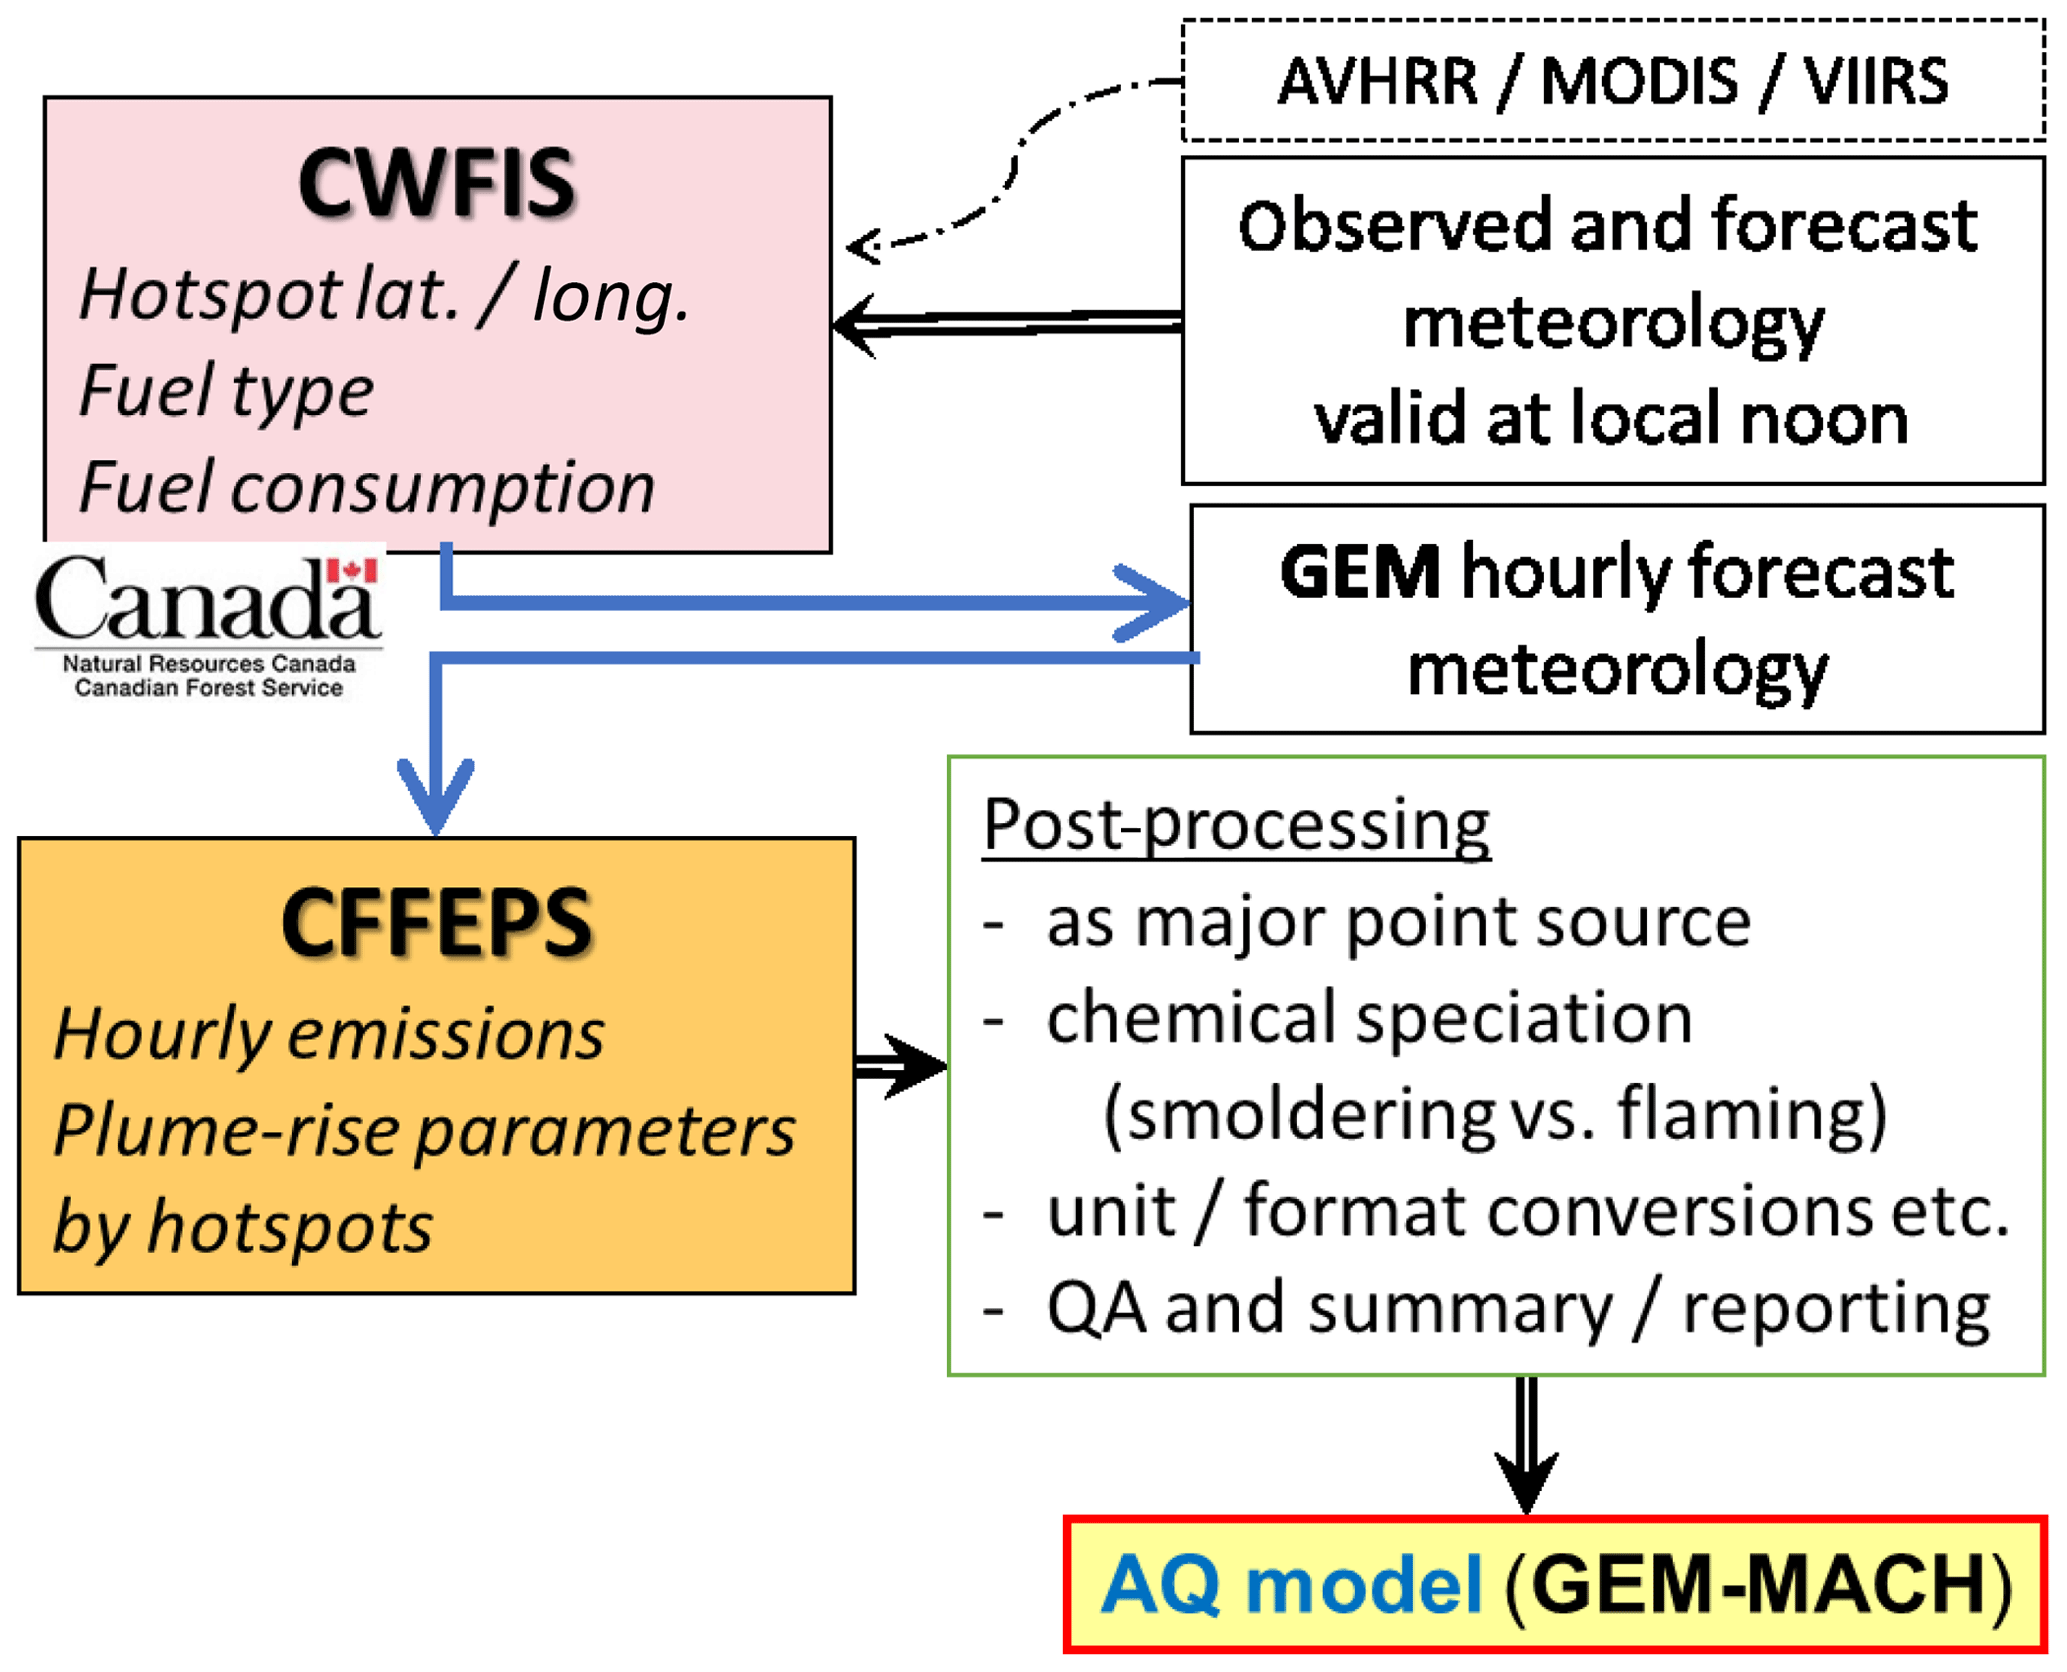 GMD - The FireWork v2 0 air quality forecast system with biomass